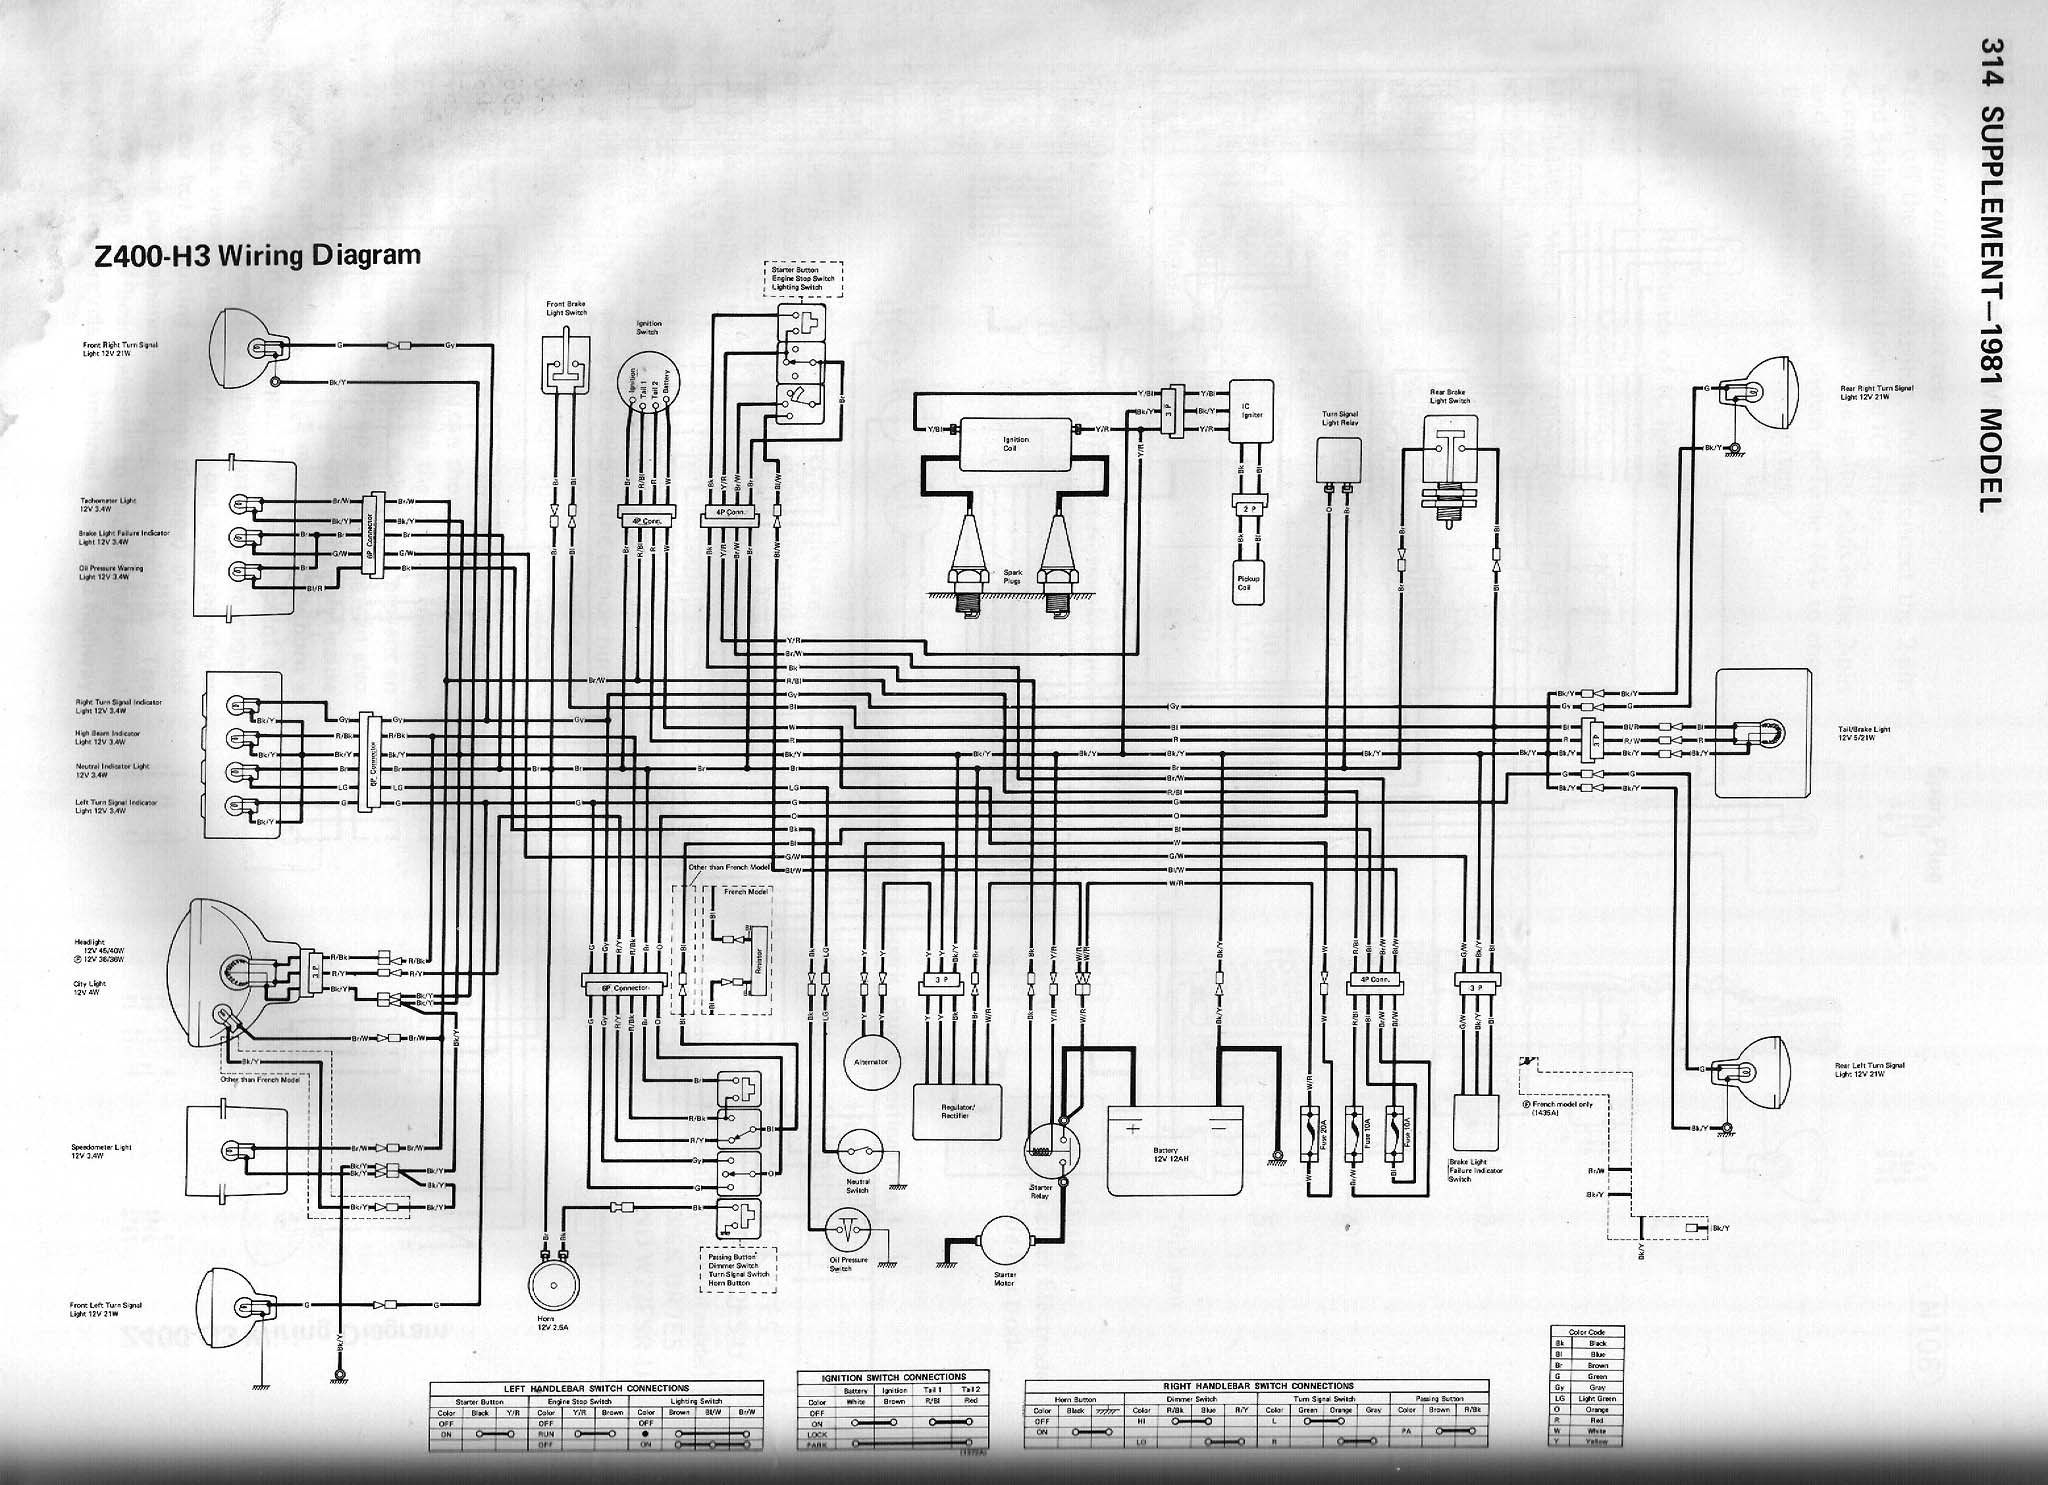 Kawasaki Kz400 B2 Wiring Diagram And Schematics 1977 Index Of Kz440 Diagrams Source H32